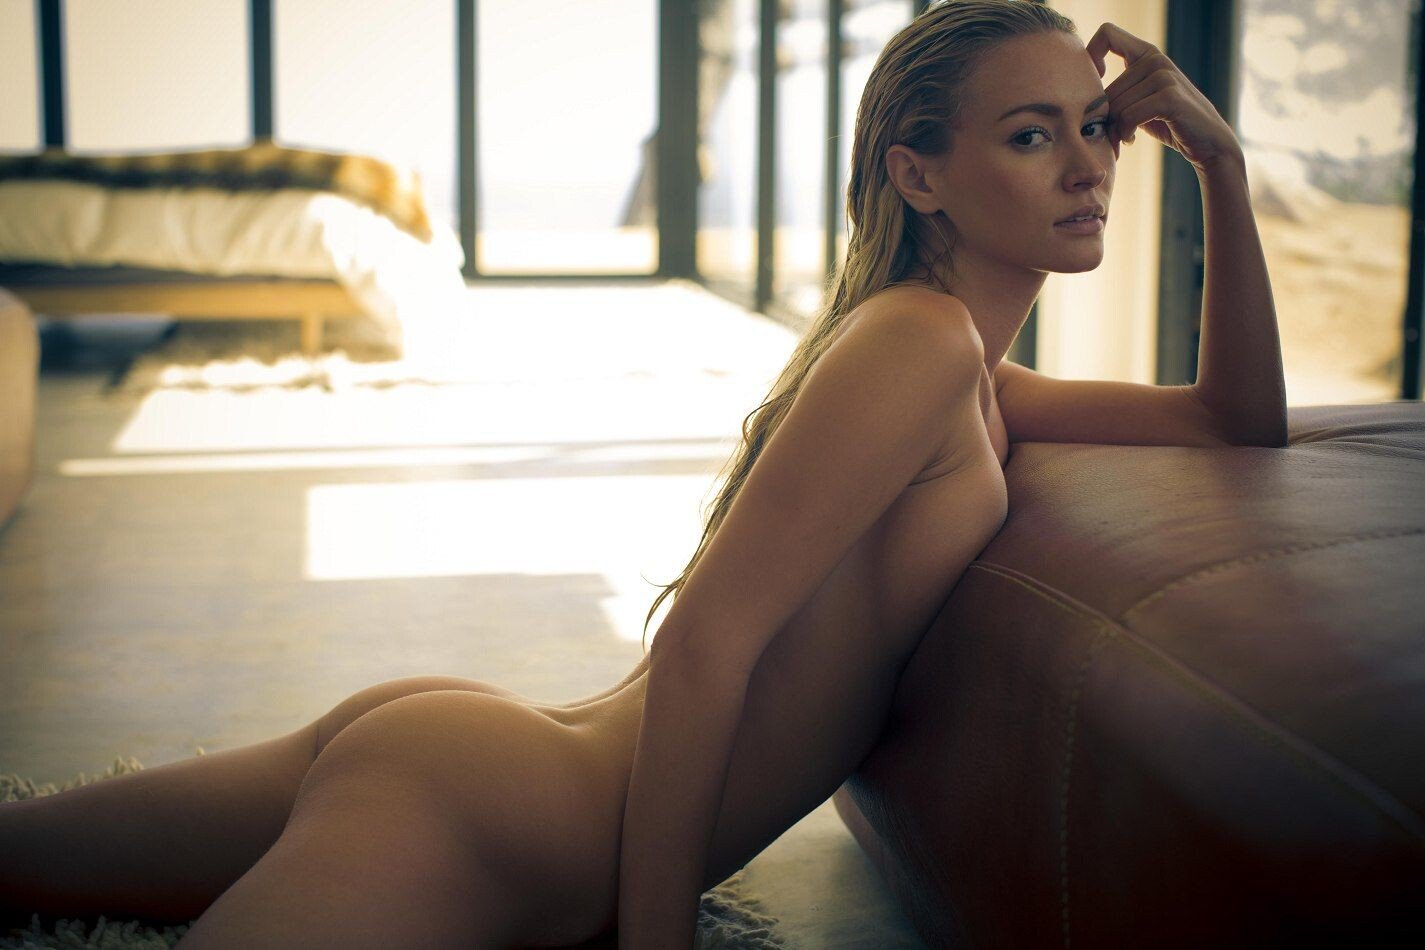 Playboy Model Bryana Holly Rocks A Raunchy Look As She Smoulders Topless By Some Boulders